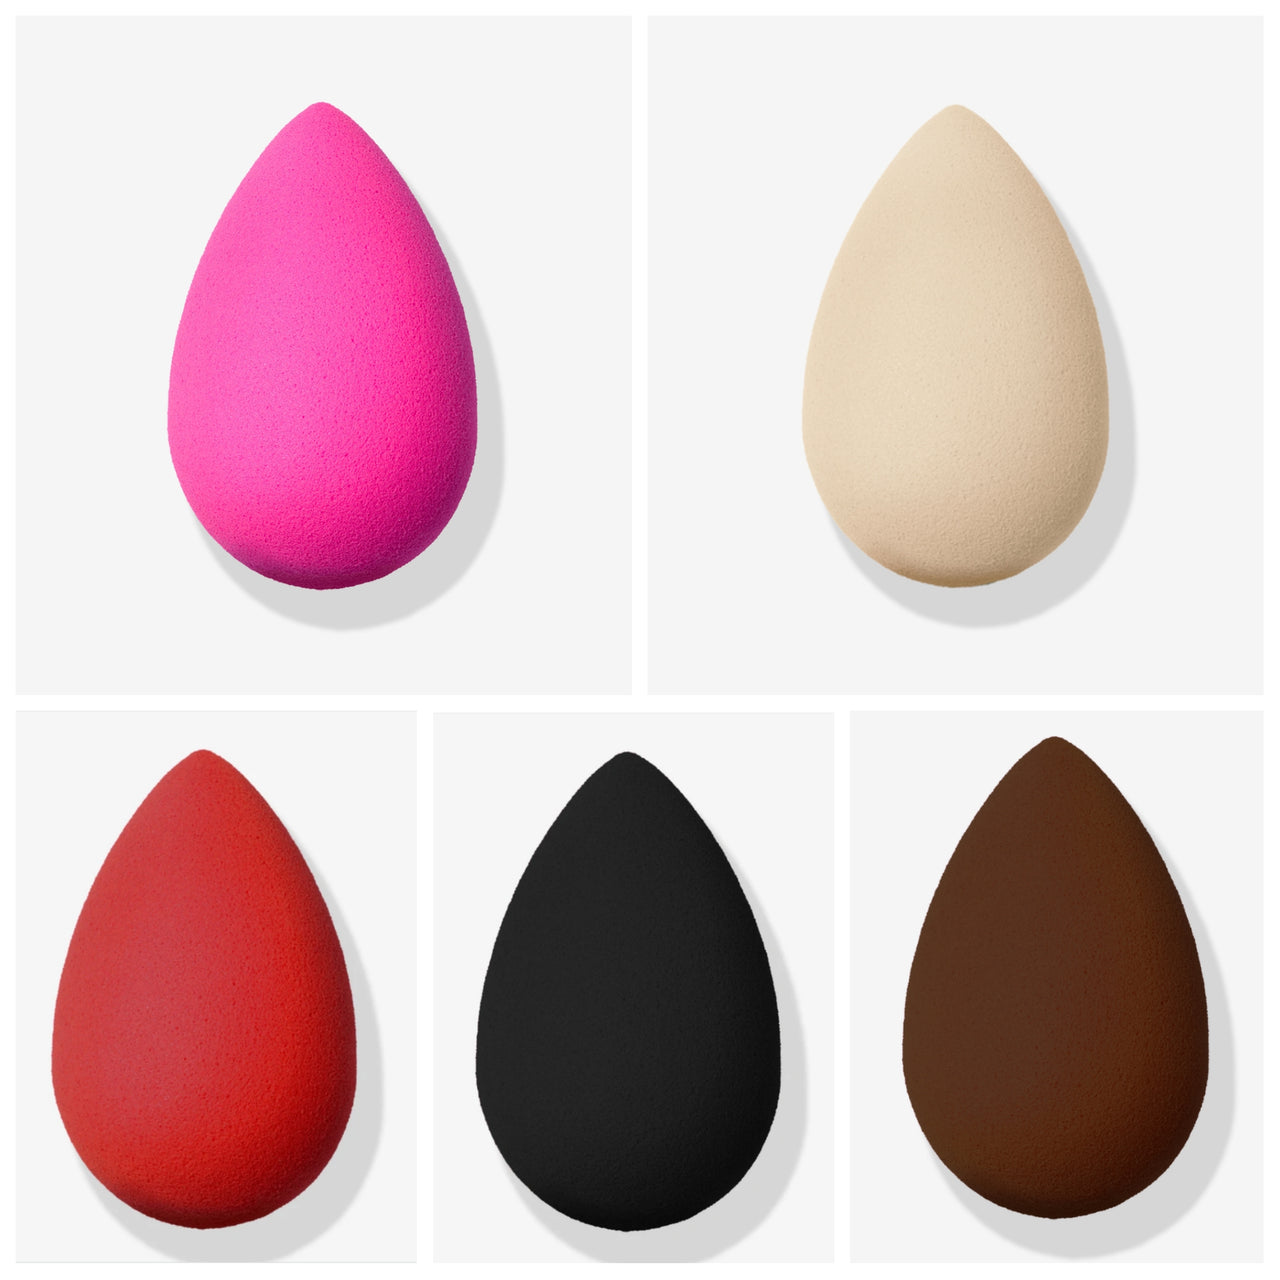 KR-BB2222 : Makeup Sponge Blender 2 DZ